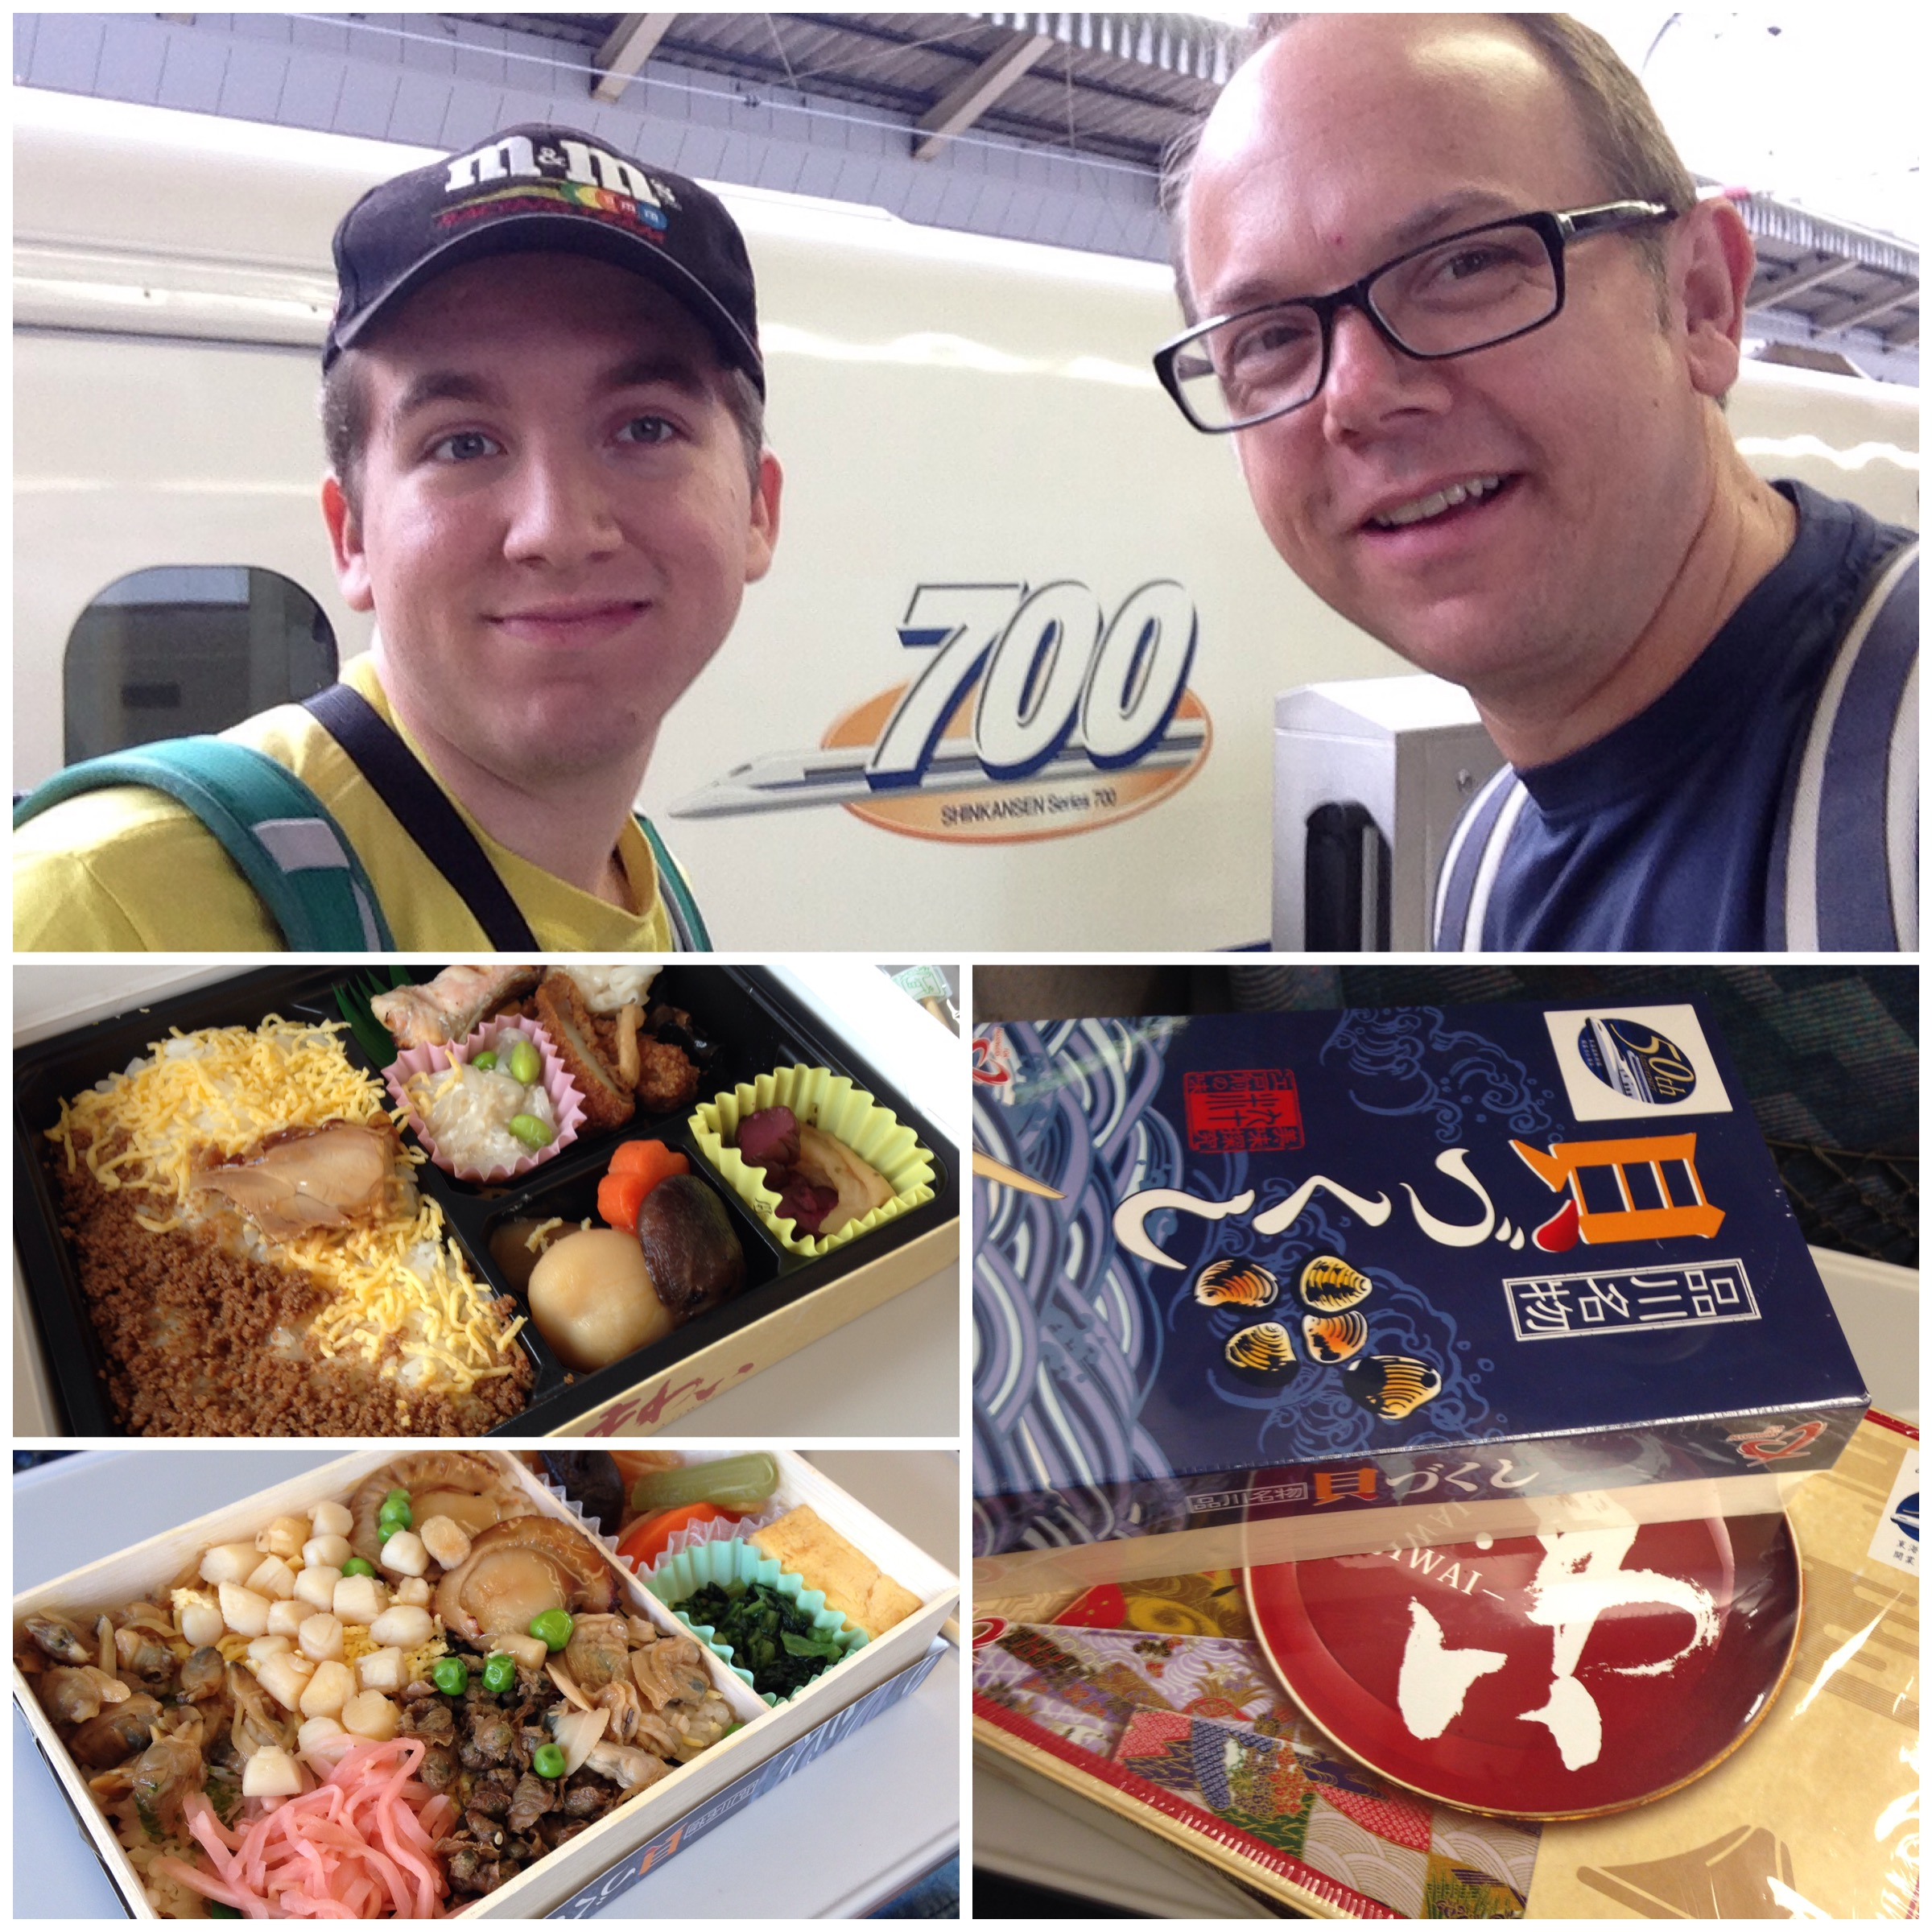 We just happened to be there during the 50th anniversary of the Shinkansen.